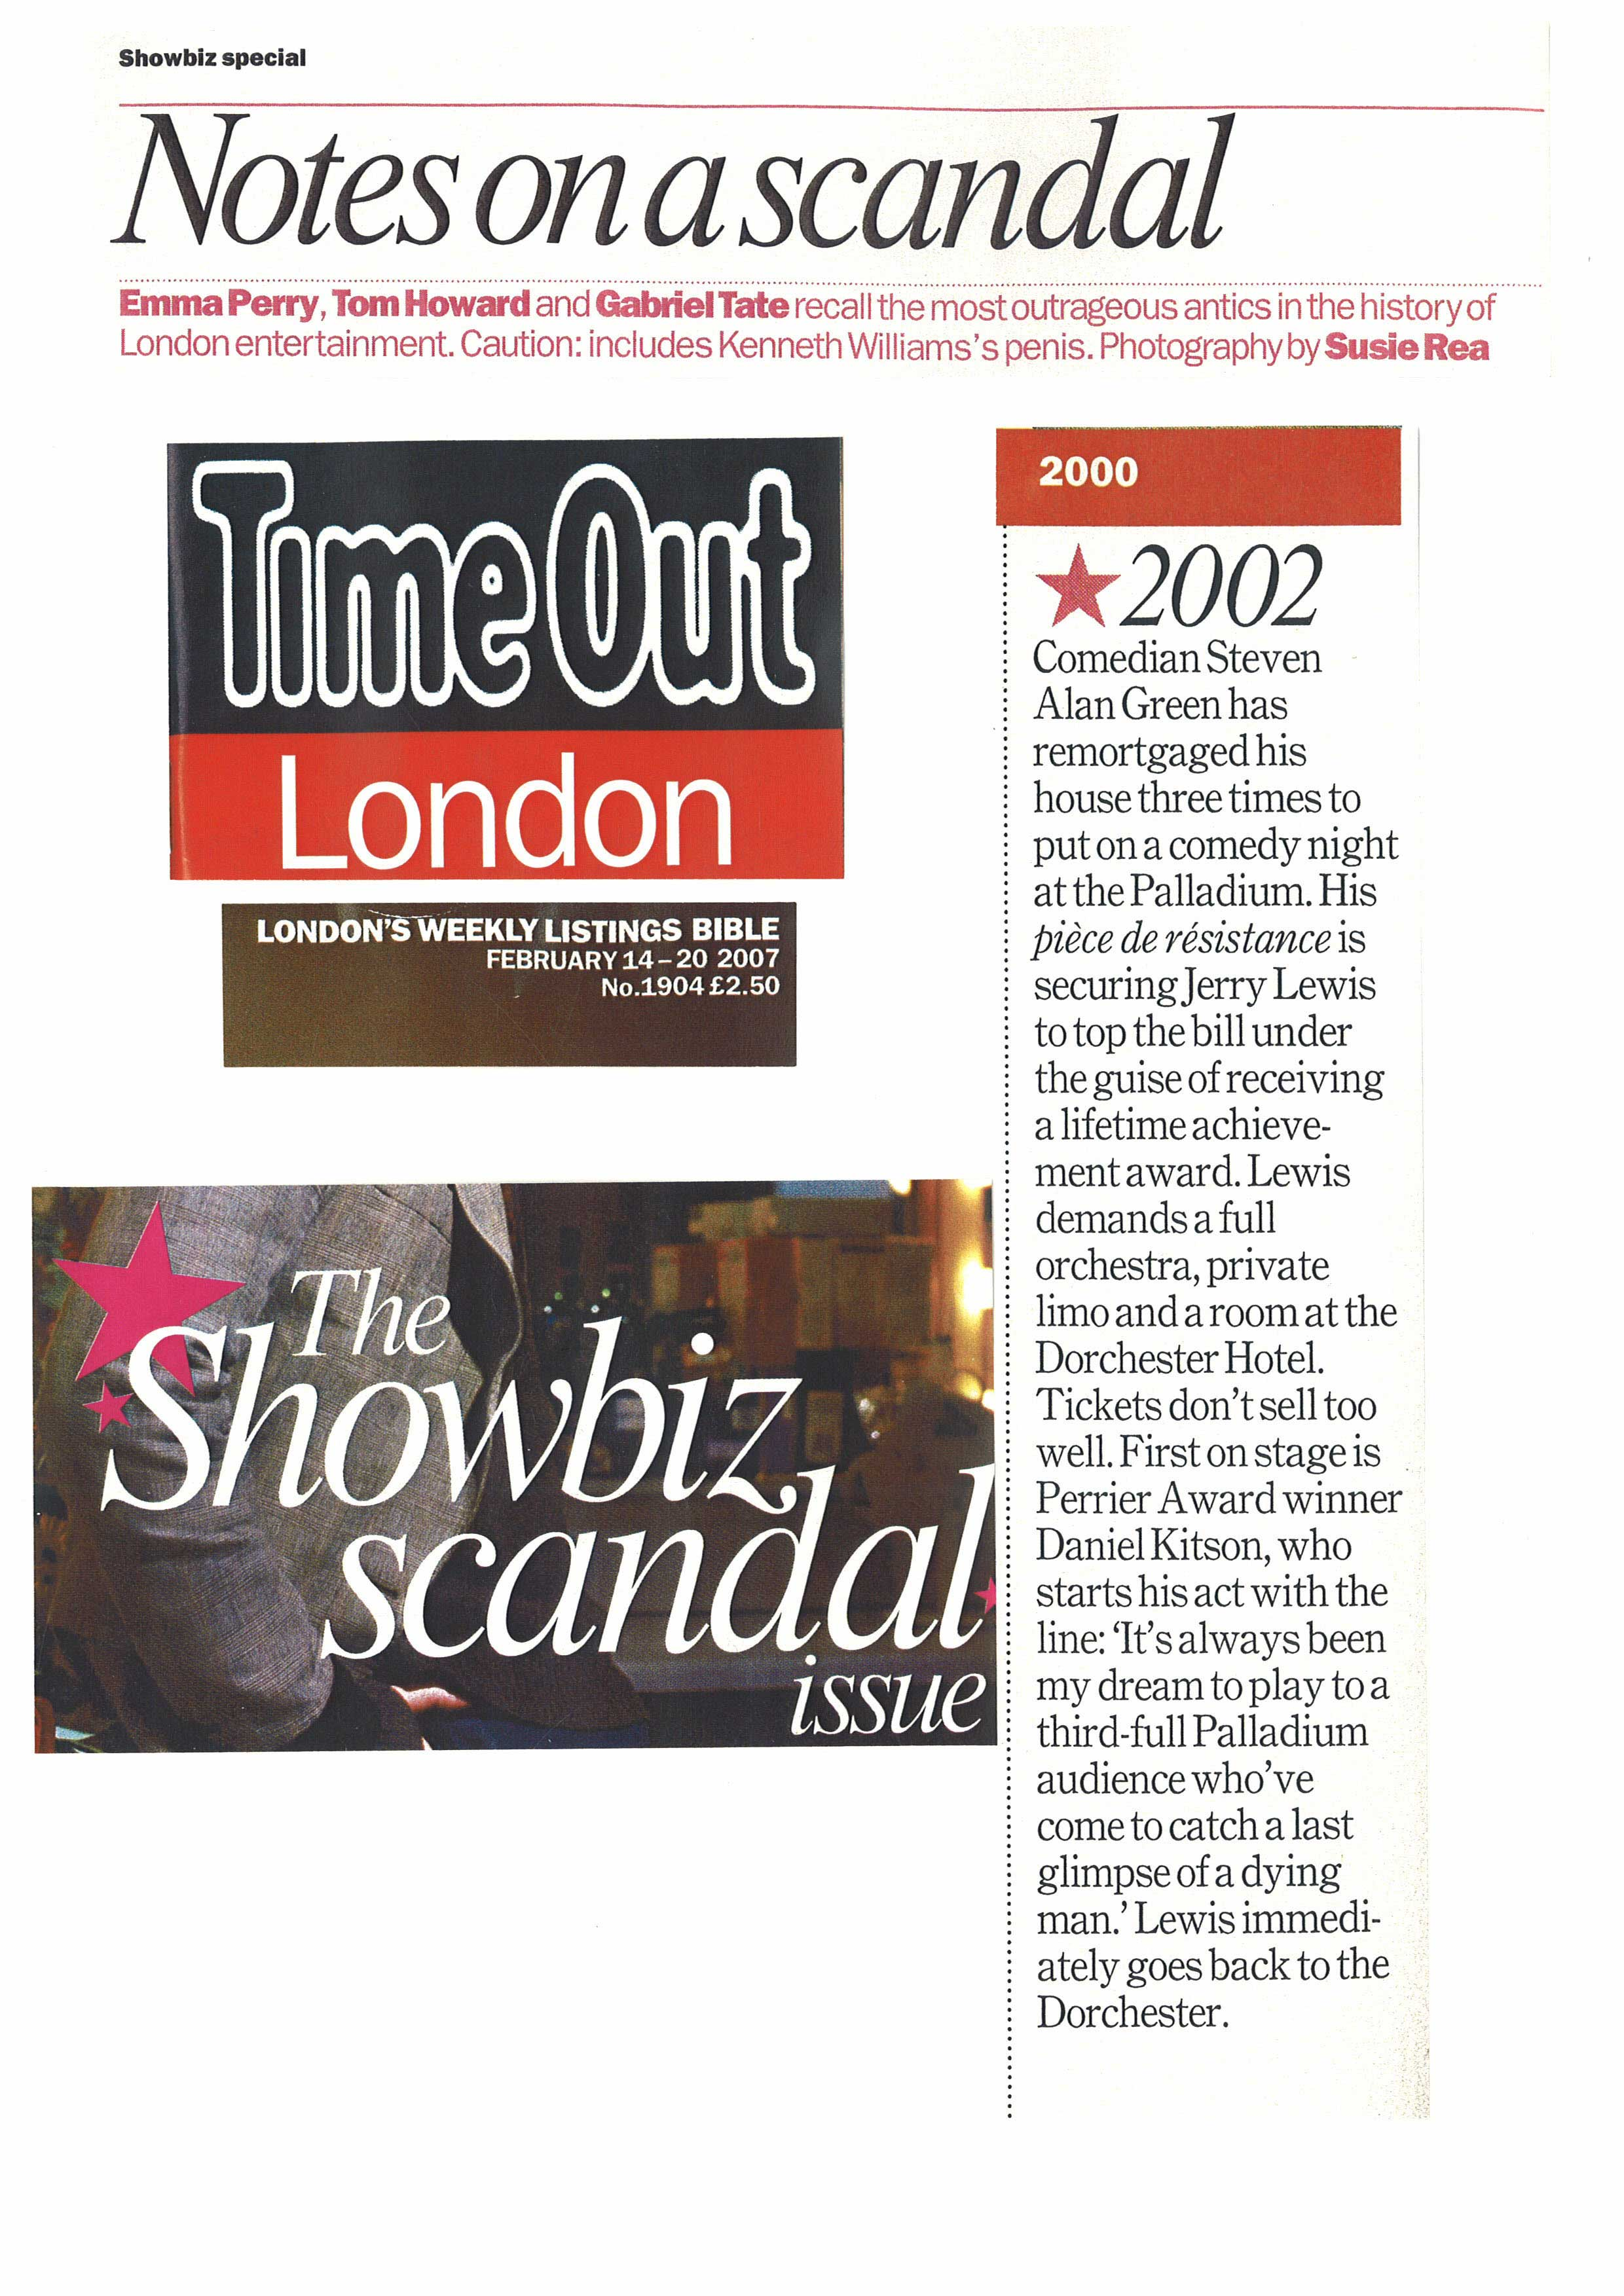 Time Out did a piece on the biggest scandals in the West End in 100 years. My show represented. I'm so proud.